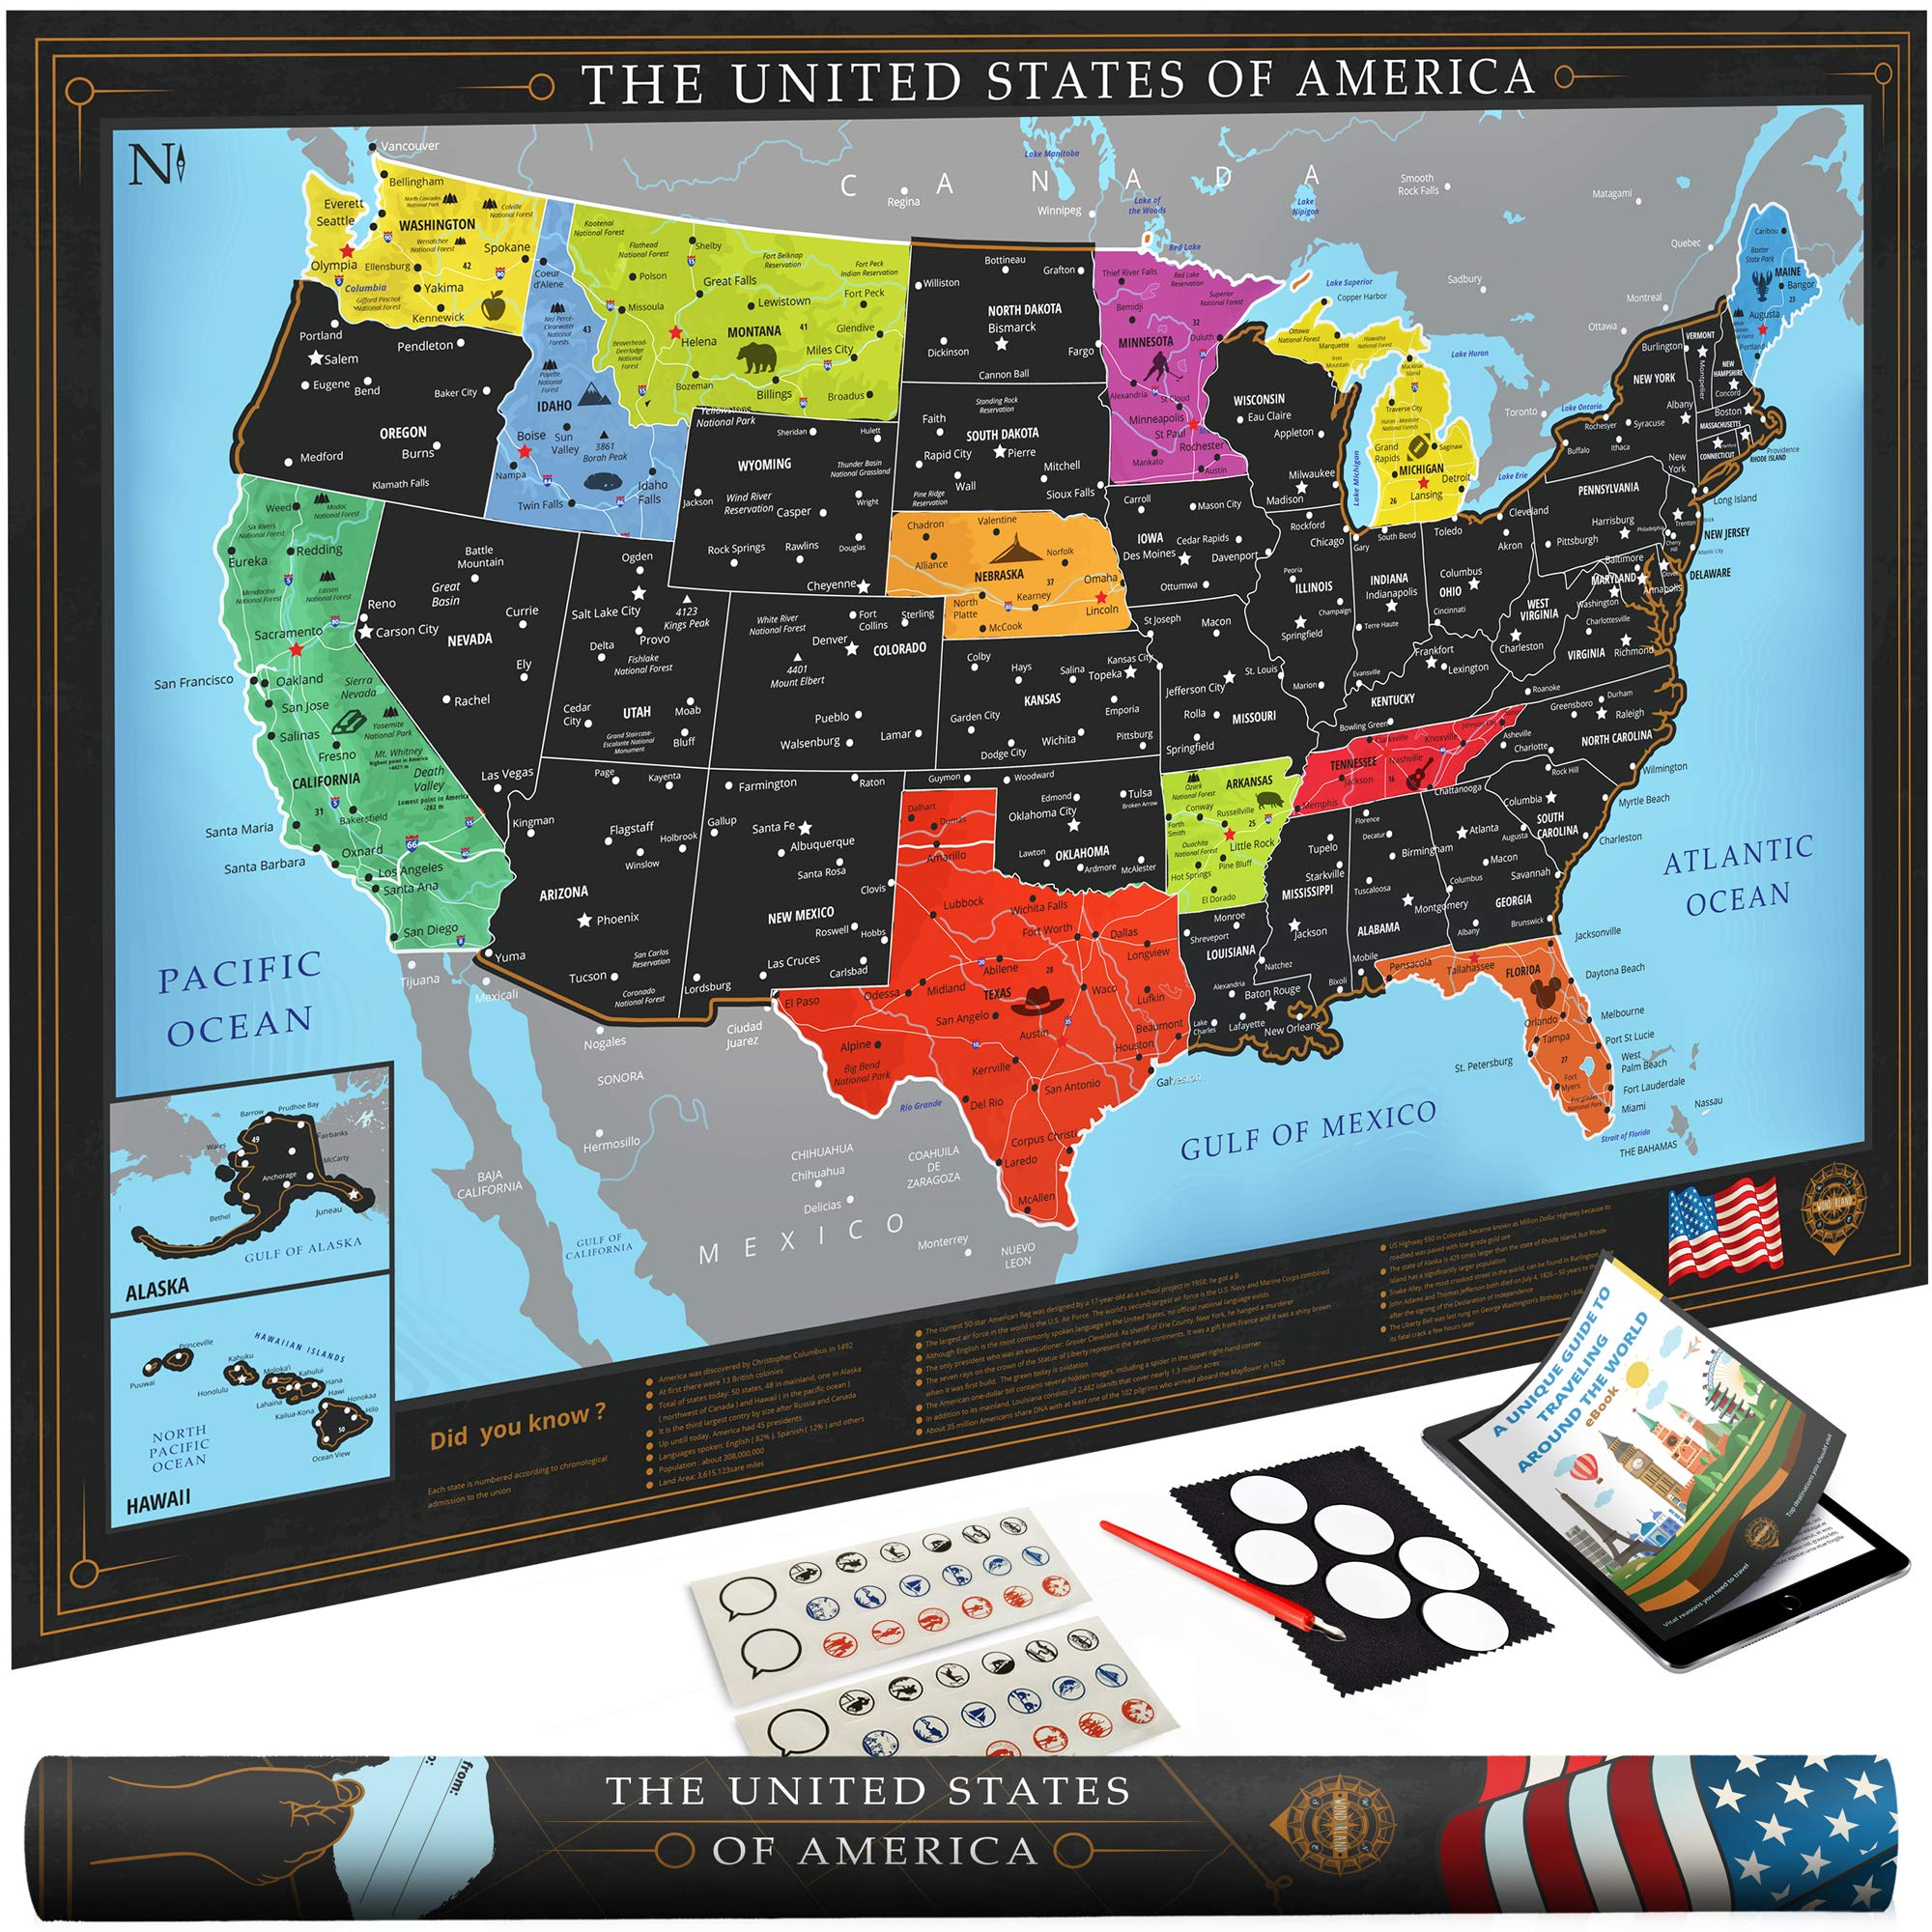 Wond3rland Premium Scratch Off USA Map | Unique Wall Map Poster | Deluxe Gift for Travelers & Travel Tracking | Bonus Adhesive & Memory Stickers + Scratching Tool + Wiping Cloth + Traveling eBook